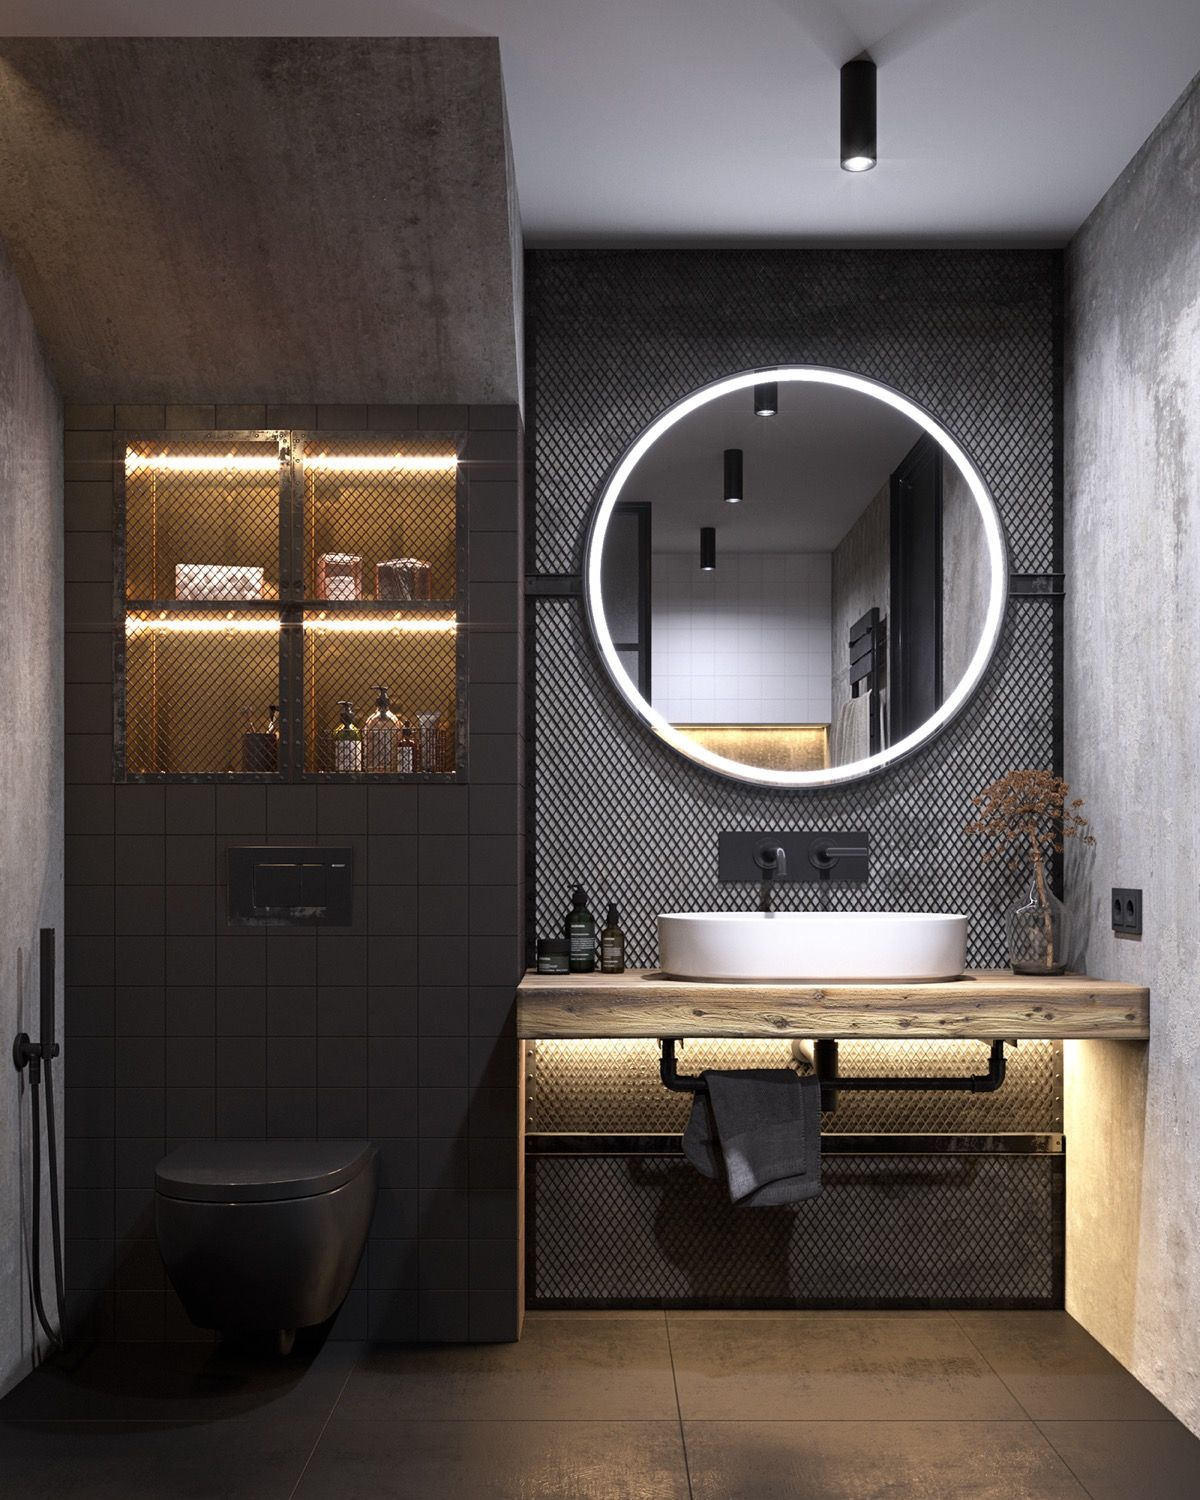 4 Apartments That Turn Up The Dial On Industrial Style Industrial Bathroom Design Industrial Bathroom Bathroom Styling